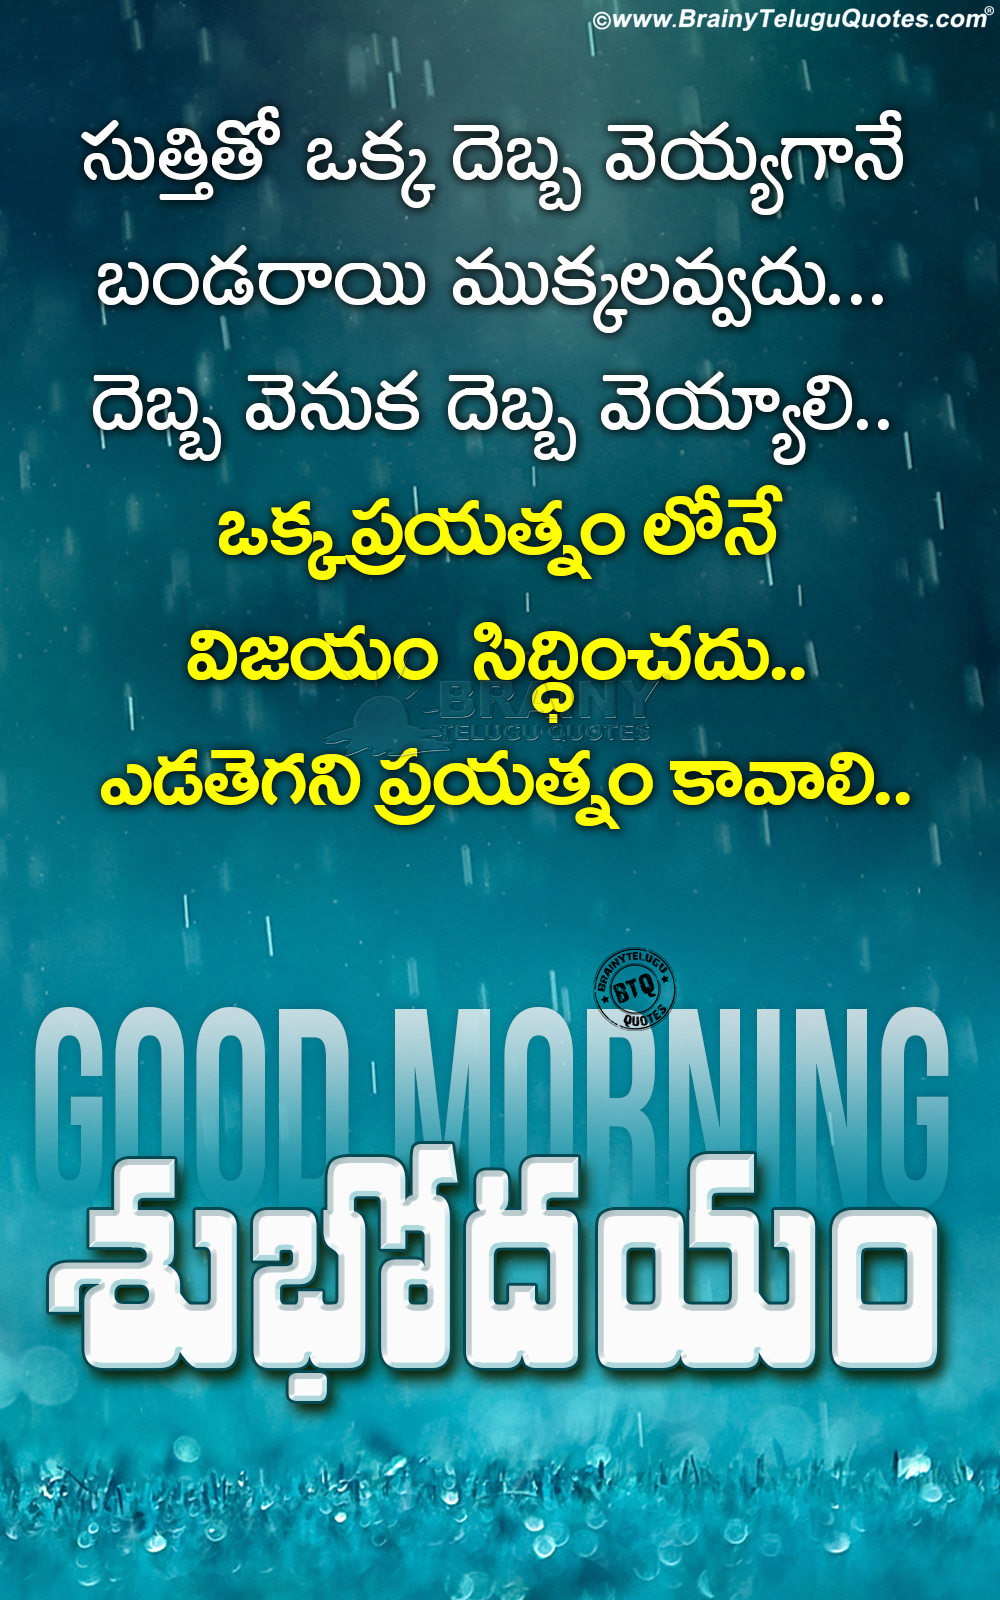 Good Morning Inspirational Words In Telugu Best Good Morning Quotes